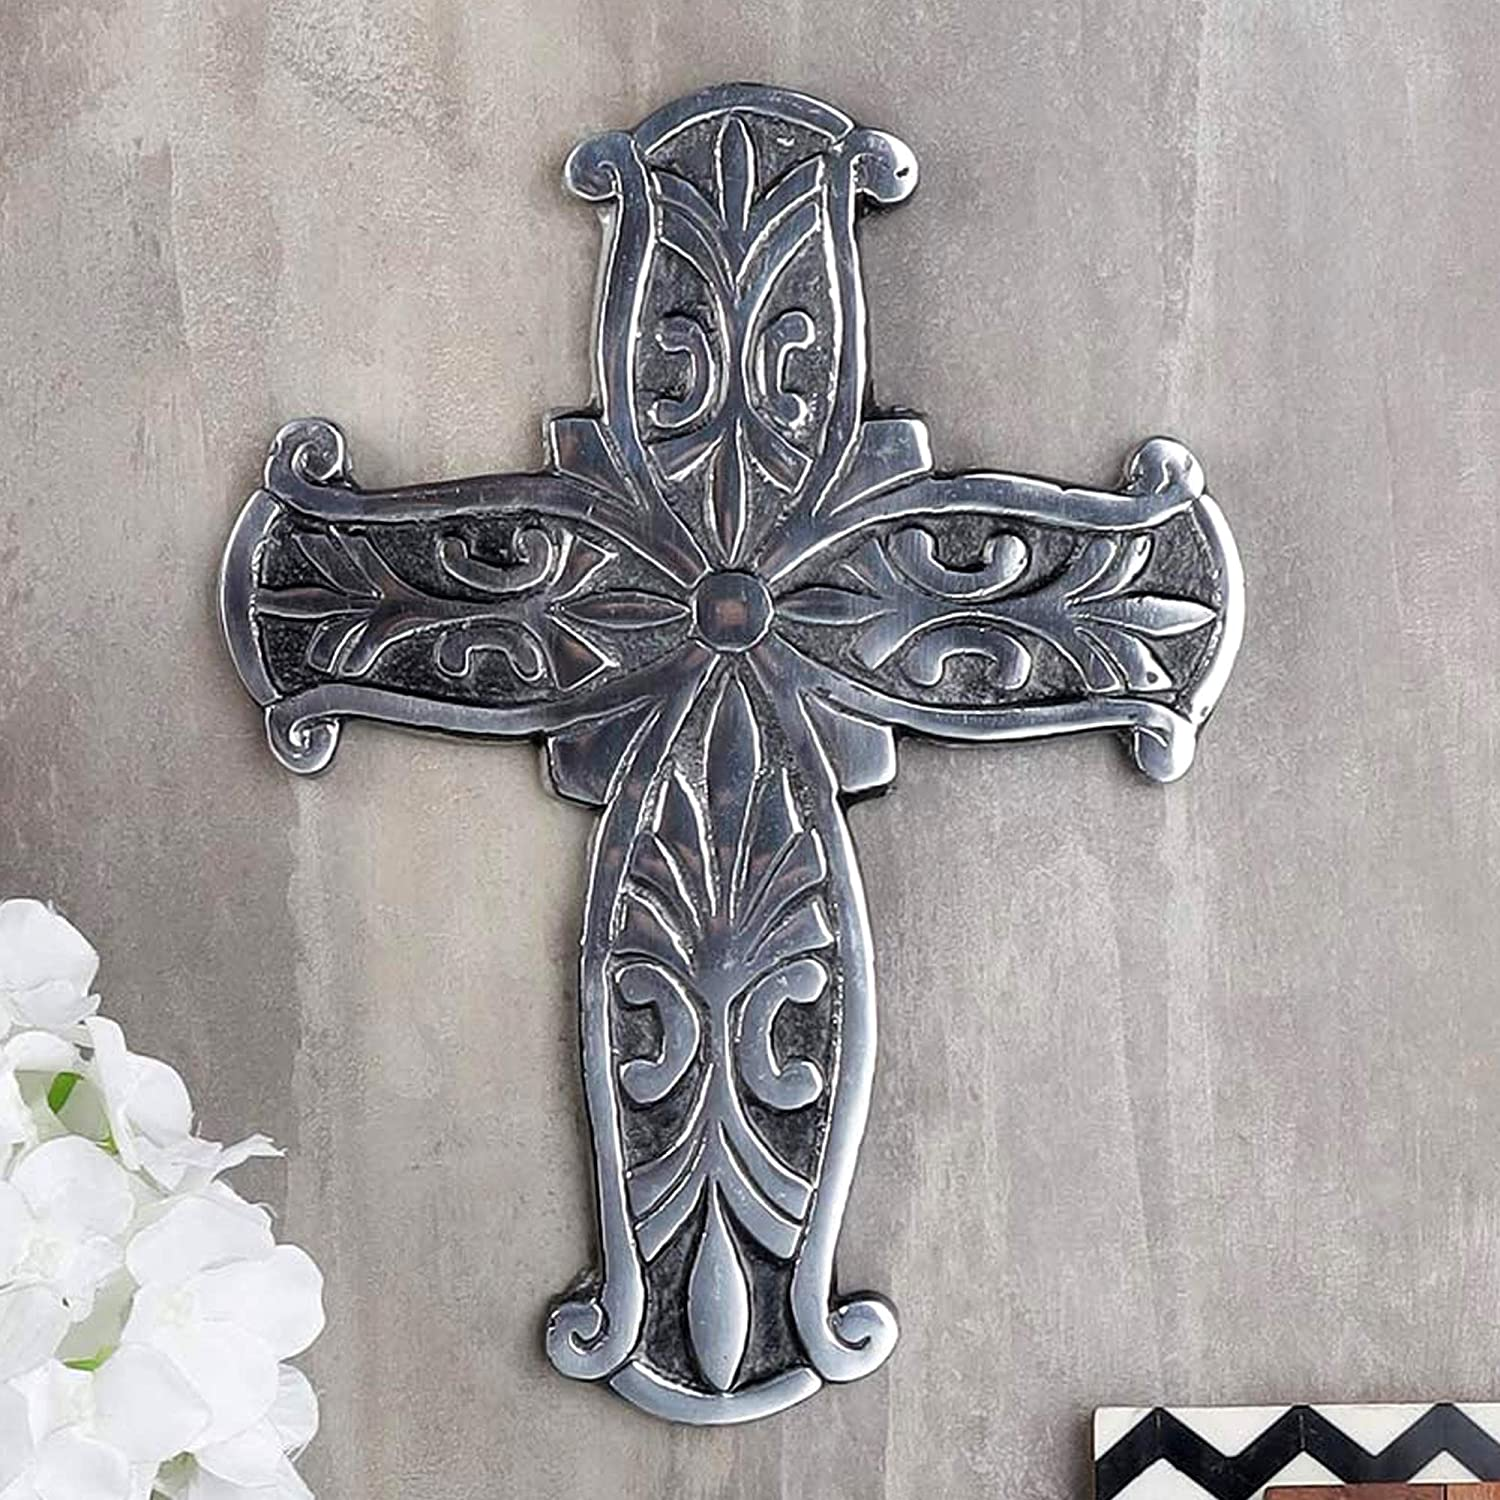 Ardour Antique Silver and Black Wall Cross for Home Decor.Metal Hanging decorative crosses wall decor - 7.2 x 9.5 Inches